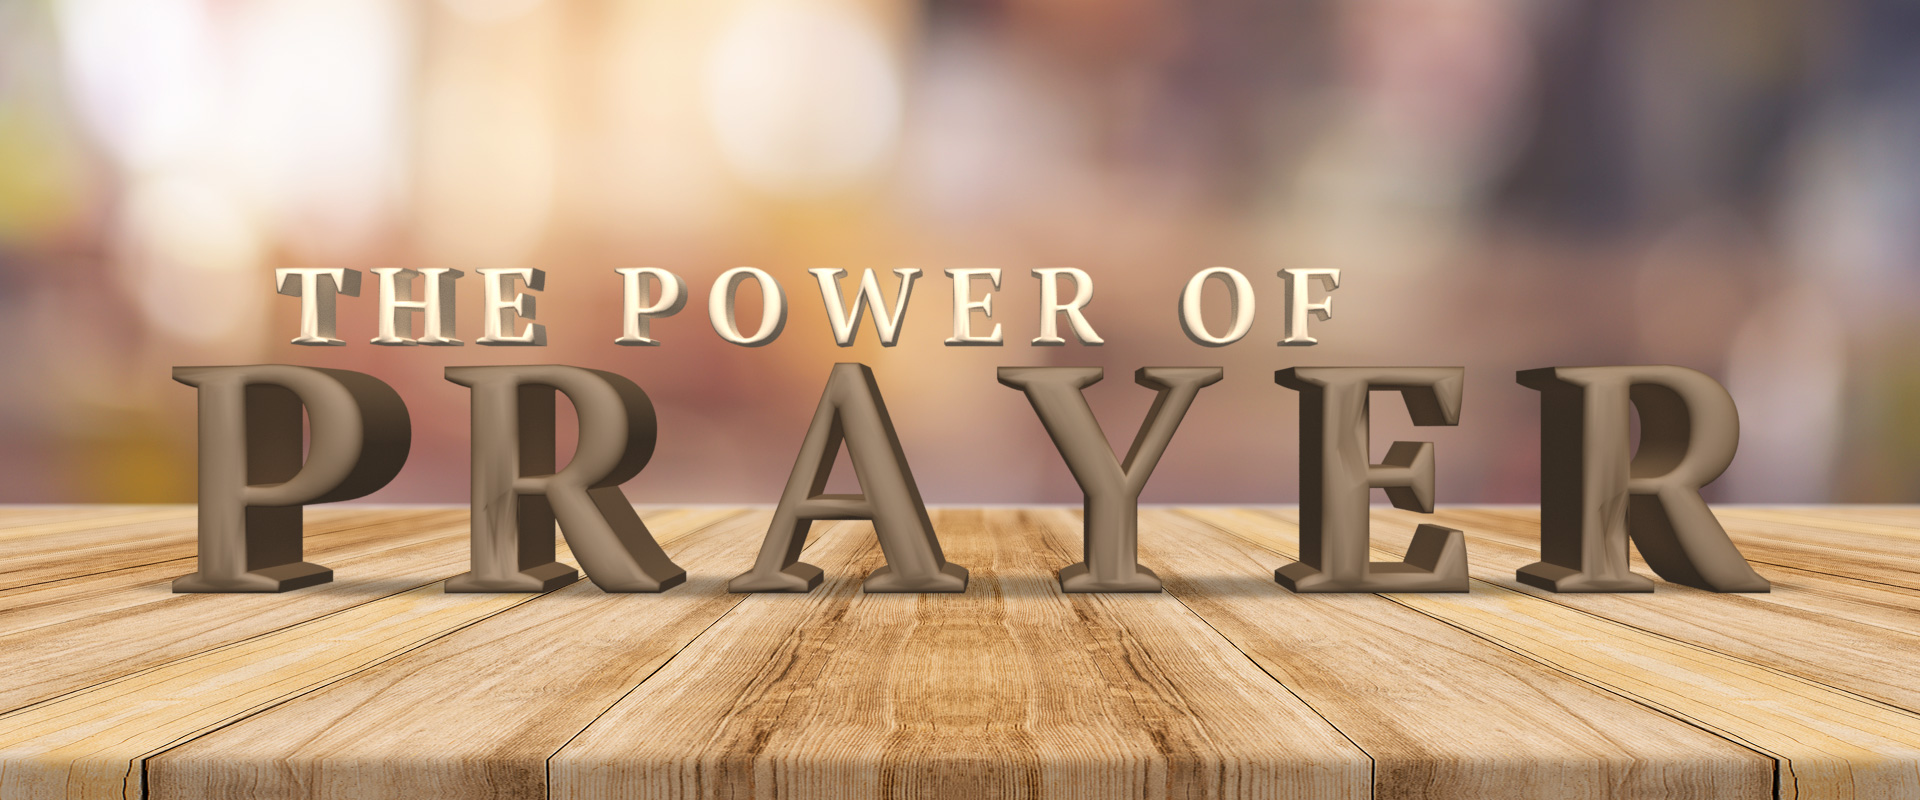 "the power of prayer Prayer is unlike speaking in tongues or prophecy because most of the time we do  not see god's power manifest itself immediately and in our ""i want it yesterday""."